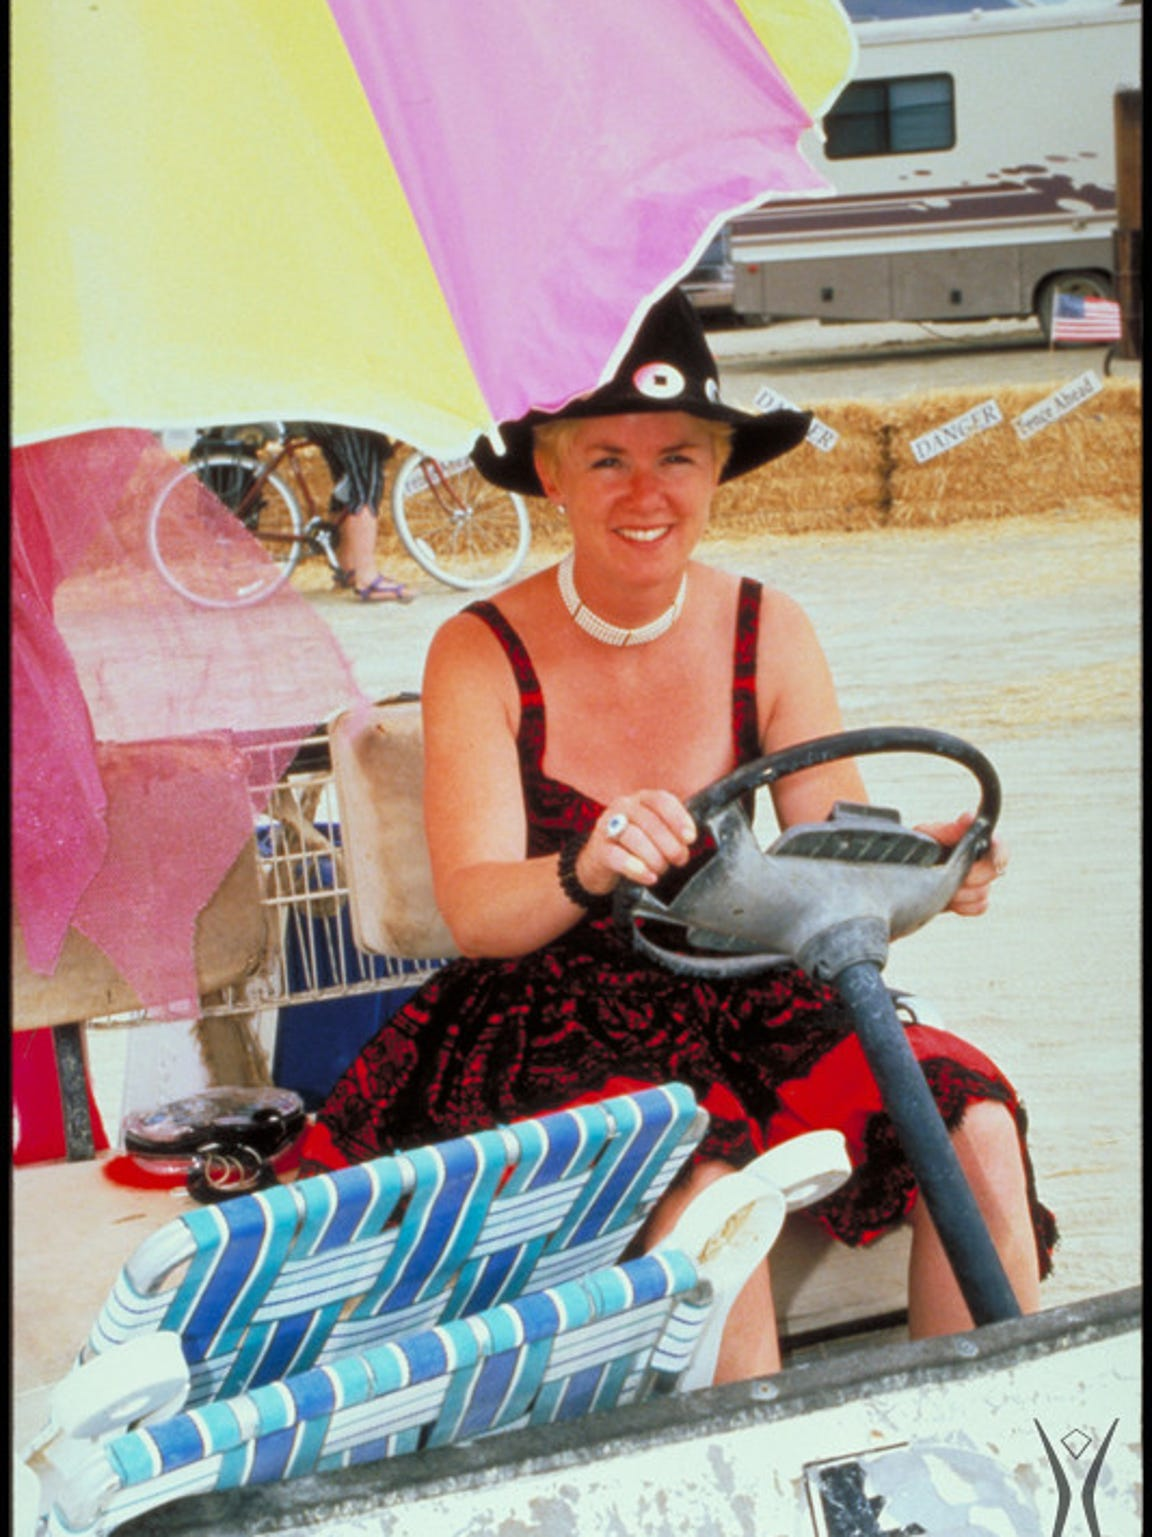 Burning Man founder Marian Goodell is pictured at Burning